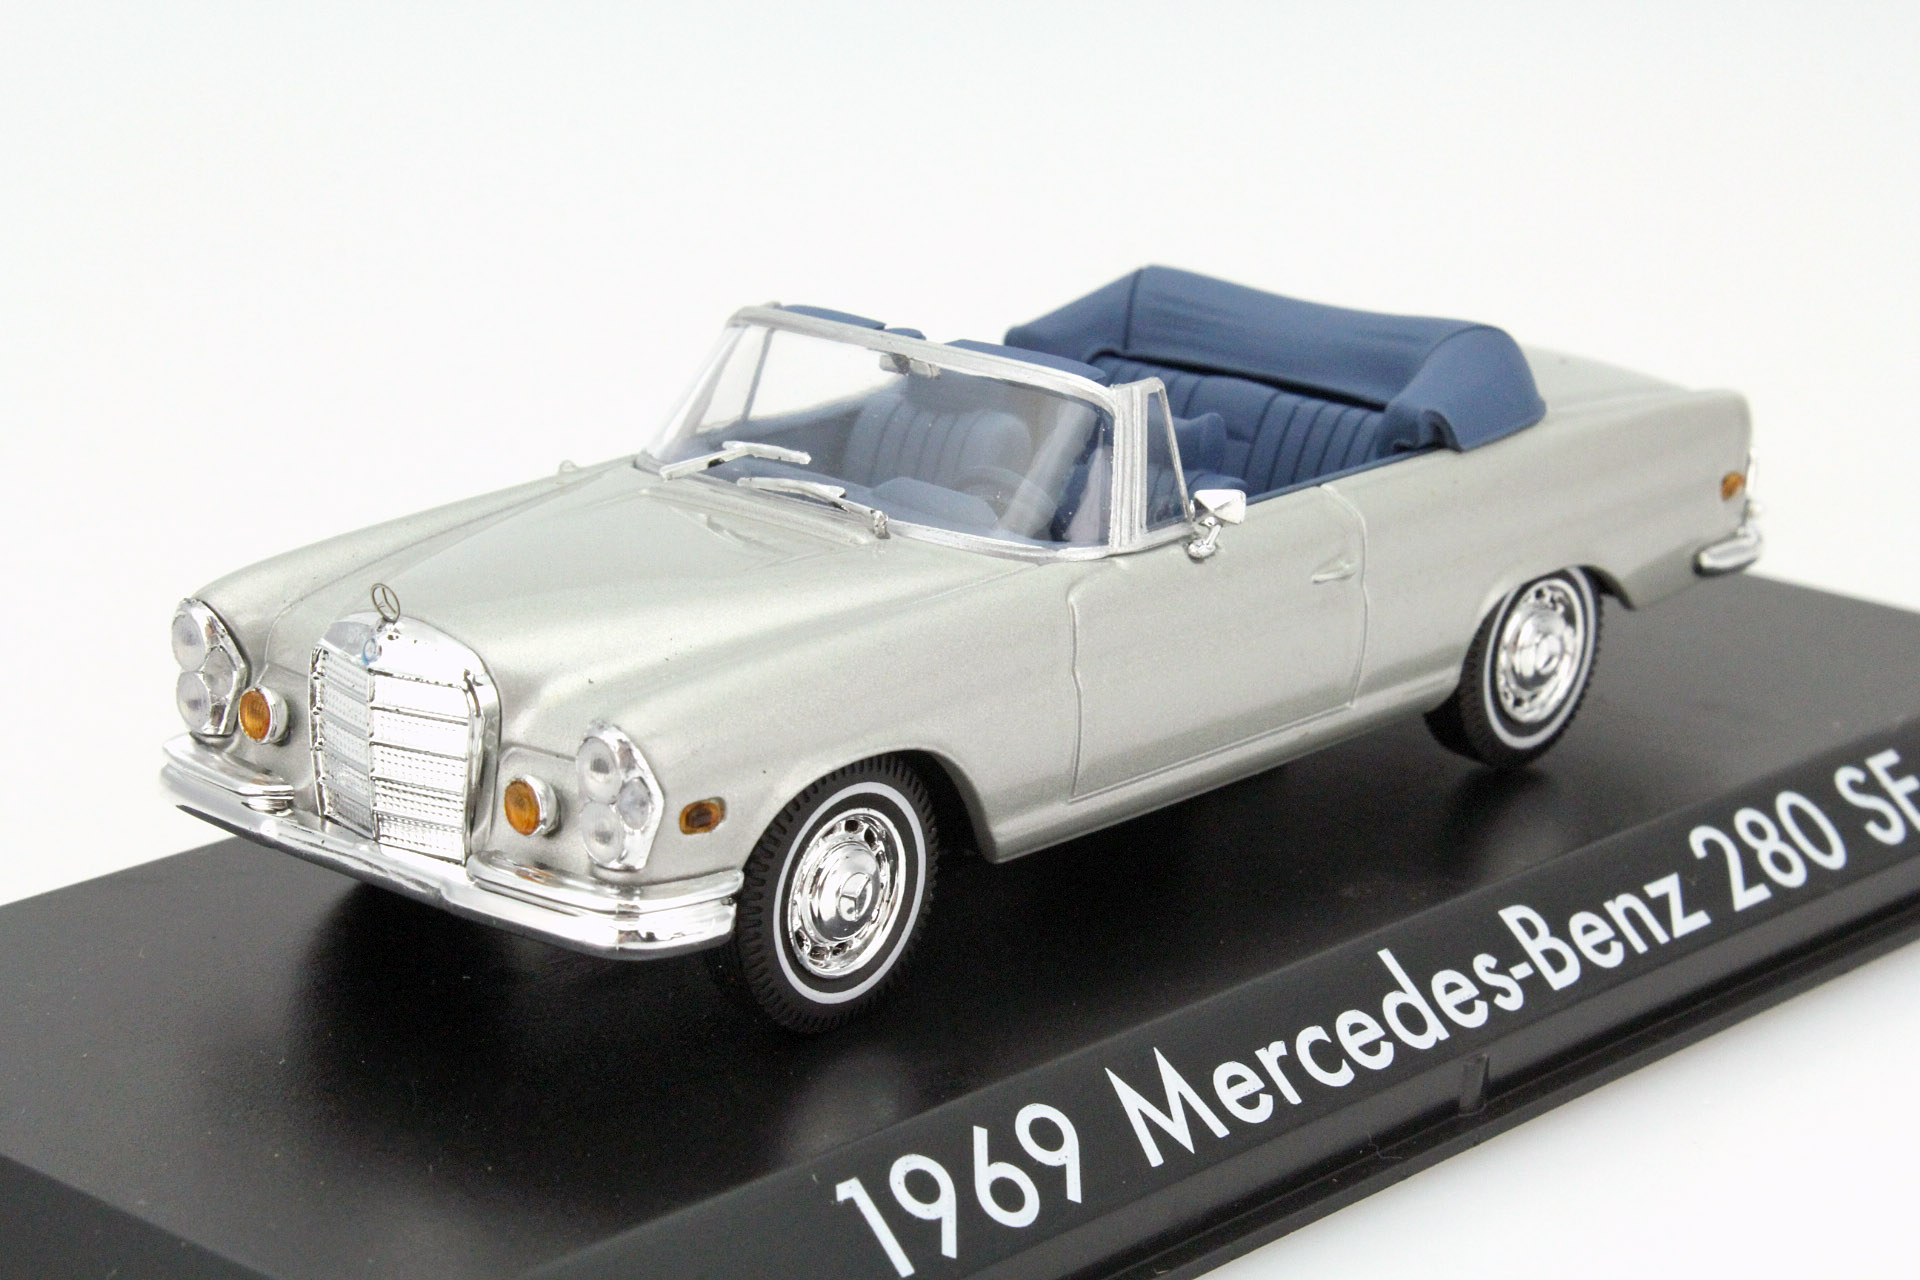 1969 mercedes benz 280 se convertible kac vegas the for 1969 mercedes benz 280 se convertible